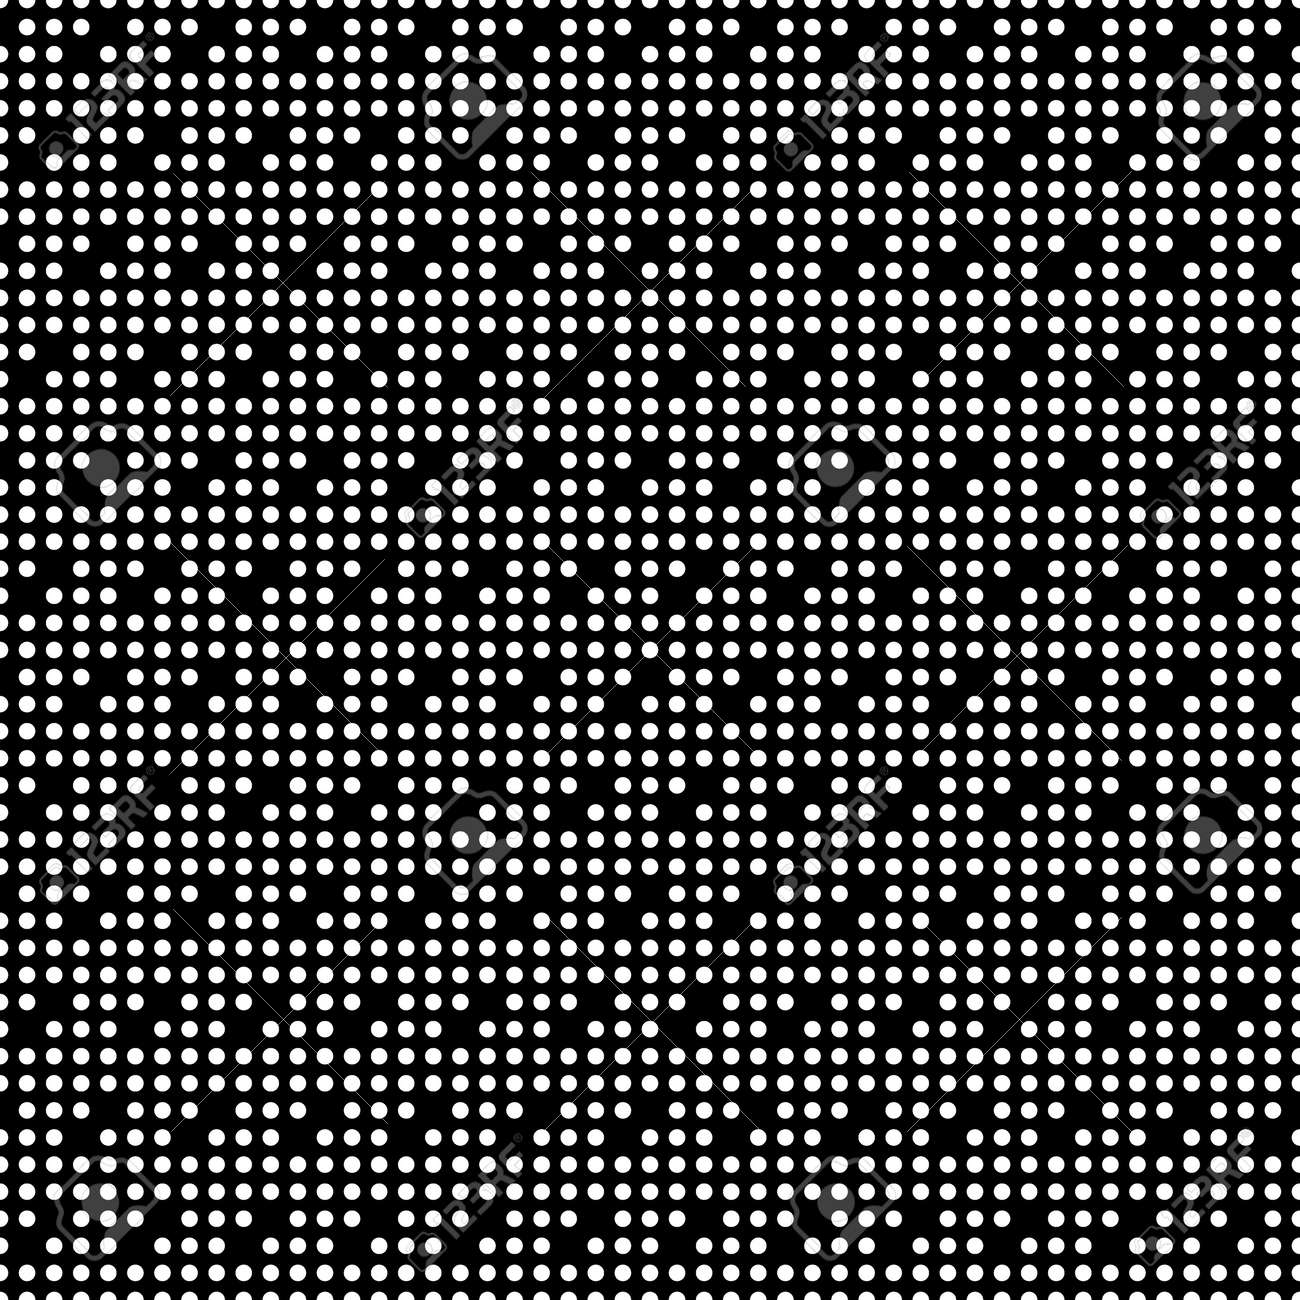 Seamless surface pattern with symmetric geometric ornament. Round spots texture. Circles abstract background. Polka dot motif. For digital paper, textile print, web design. Vector art illustration - 155841881